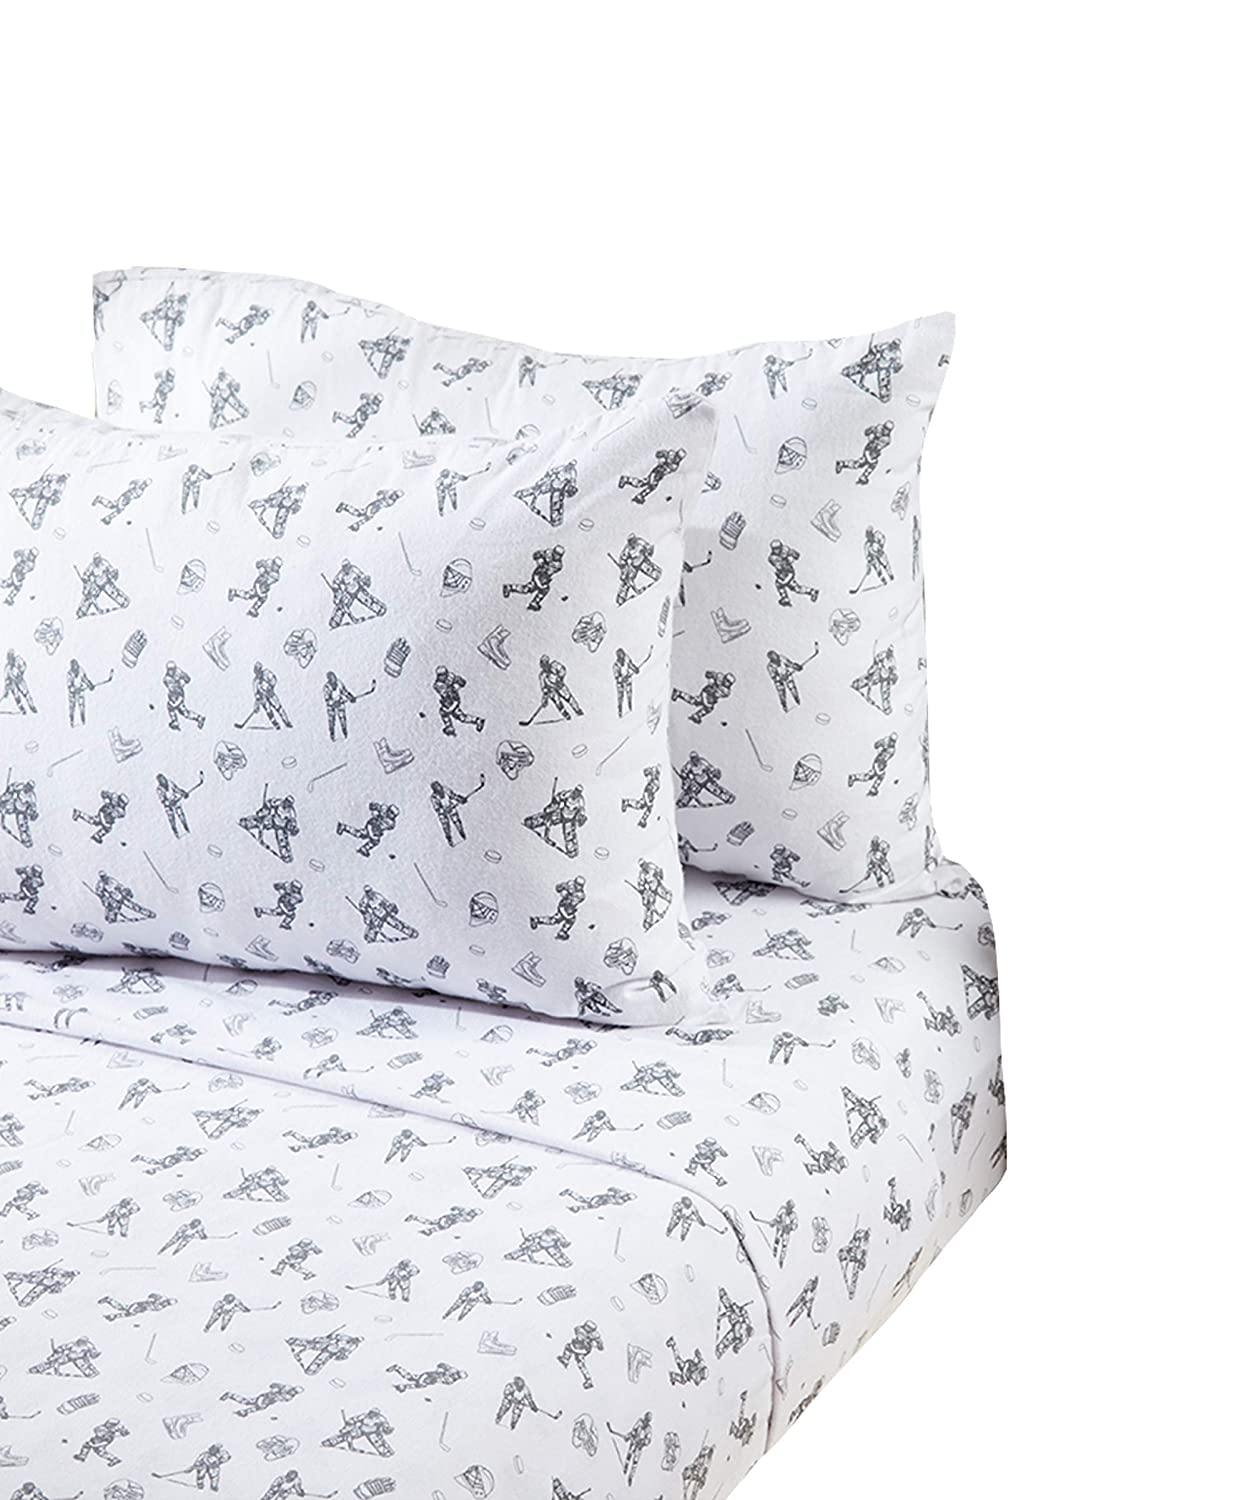 1 Flat Sheet,1 Fitted Sheet 100/% Cotton Flannel Full 2 Pillowcases Stars and Moon Flannel Hockey Players Full Sheet Set